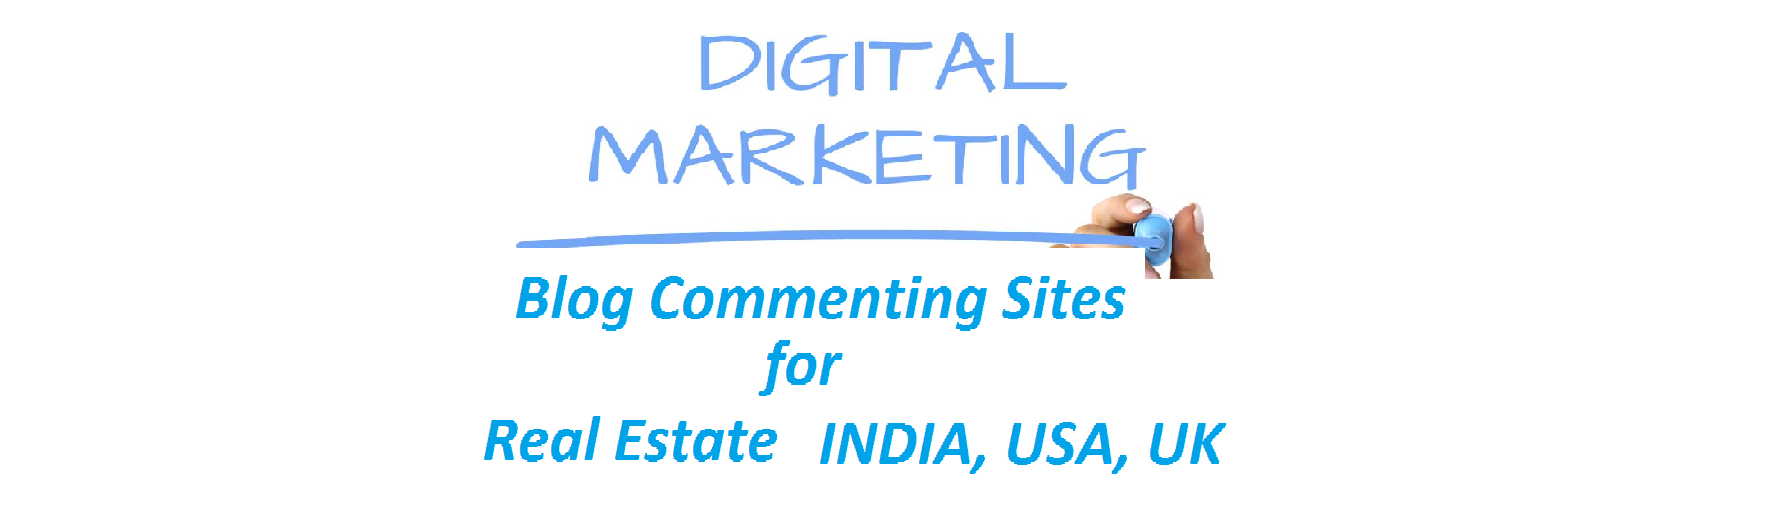 blog commenting sites for real estate